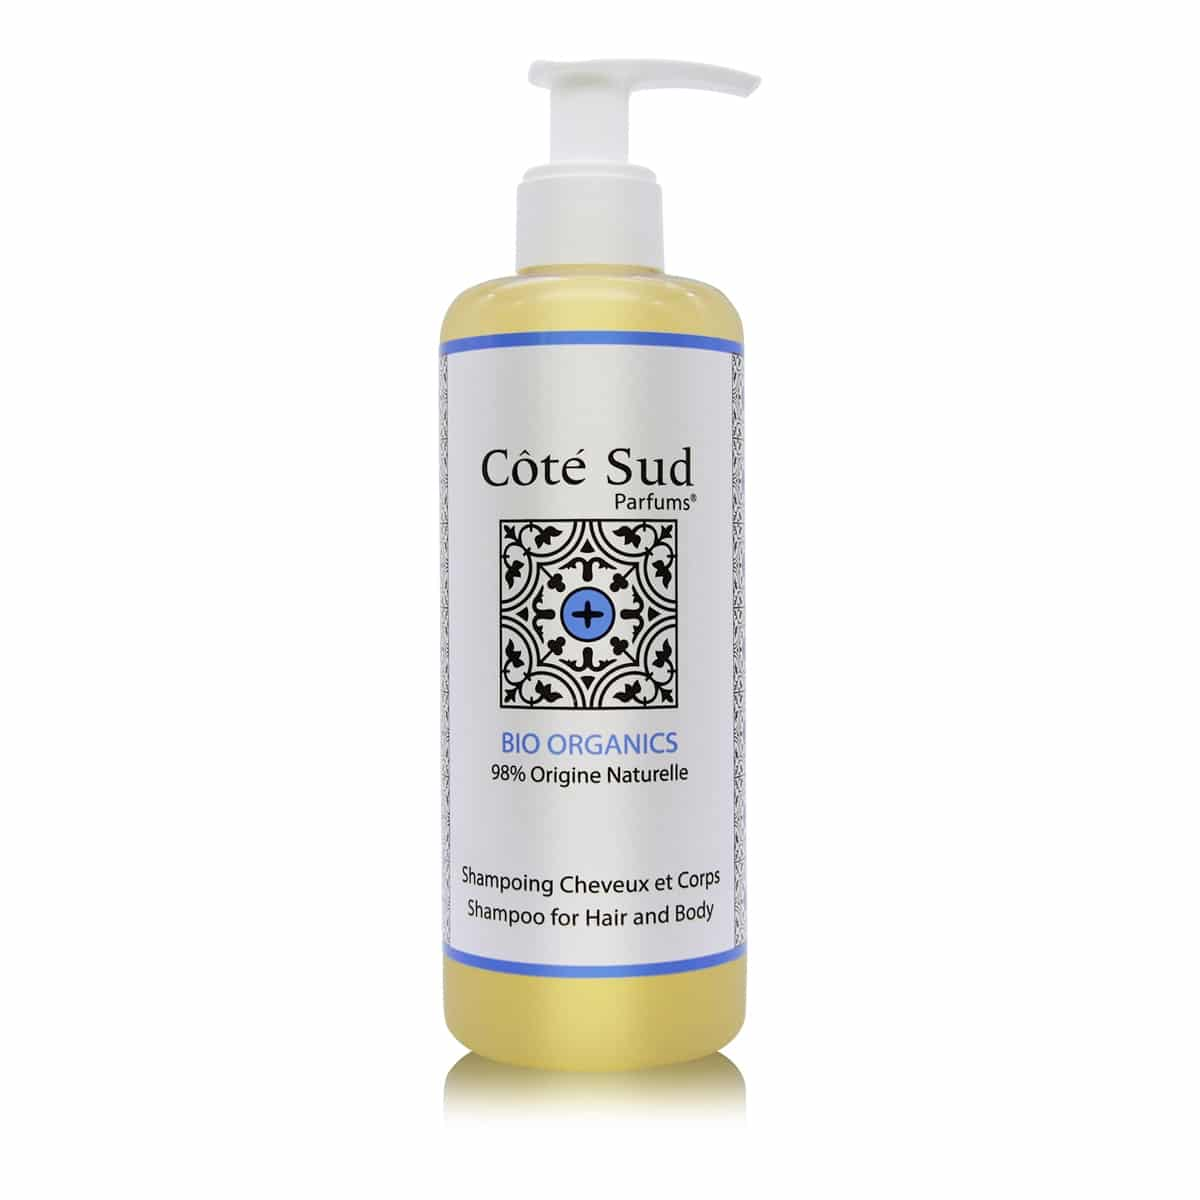 Côté Sud Bio natural shampoo for hair and body